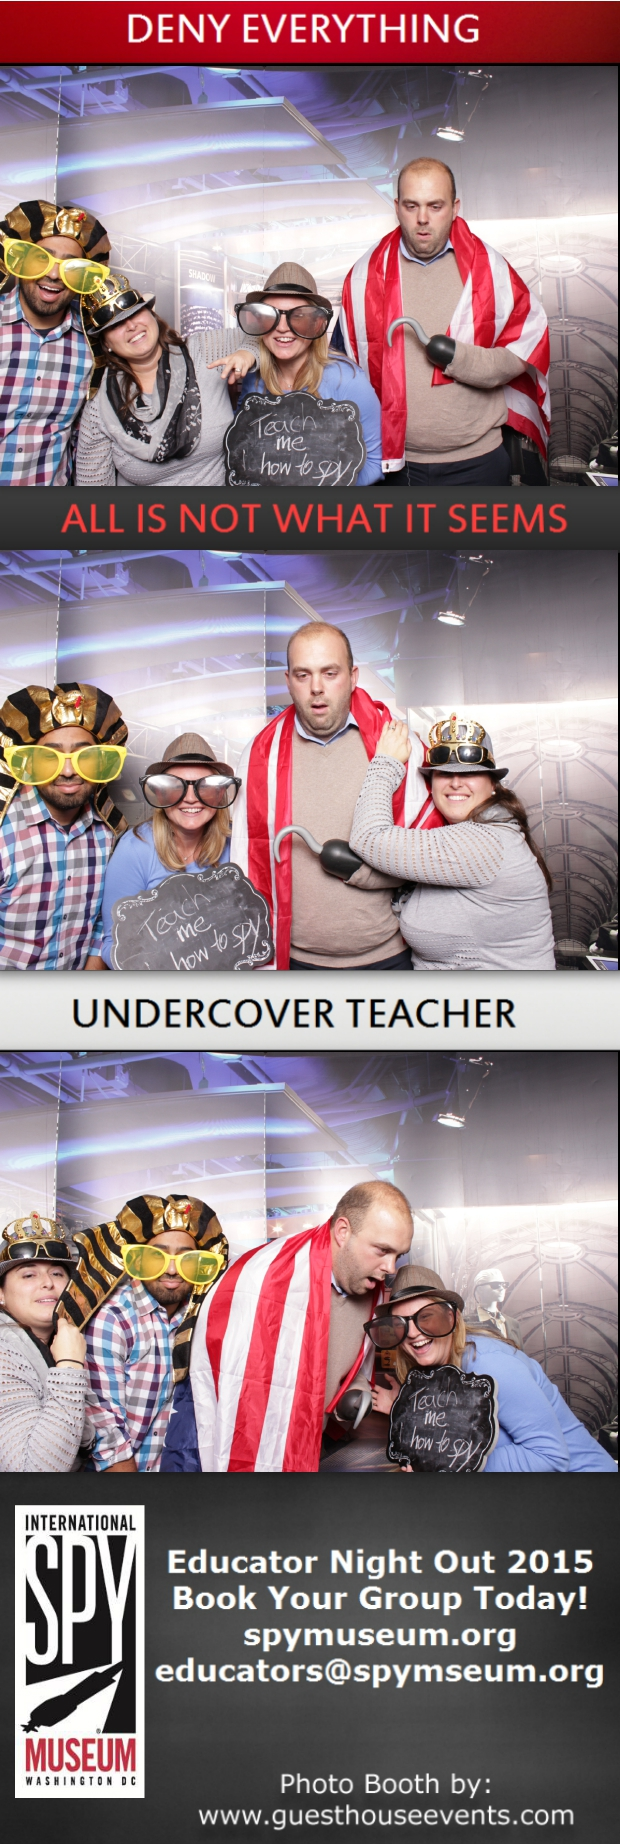 Guest House Events Photo Booth Spy Museum Educator Night Out (78).jpg